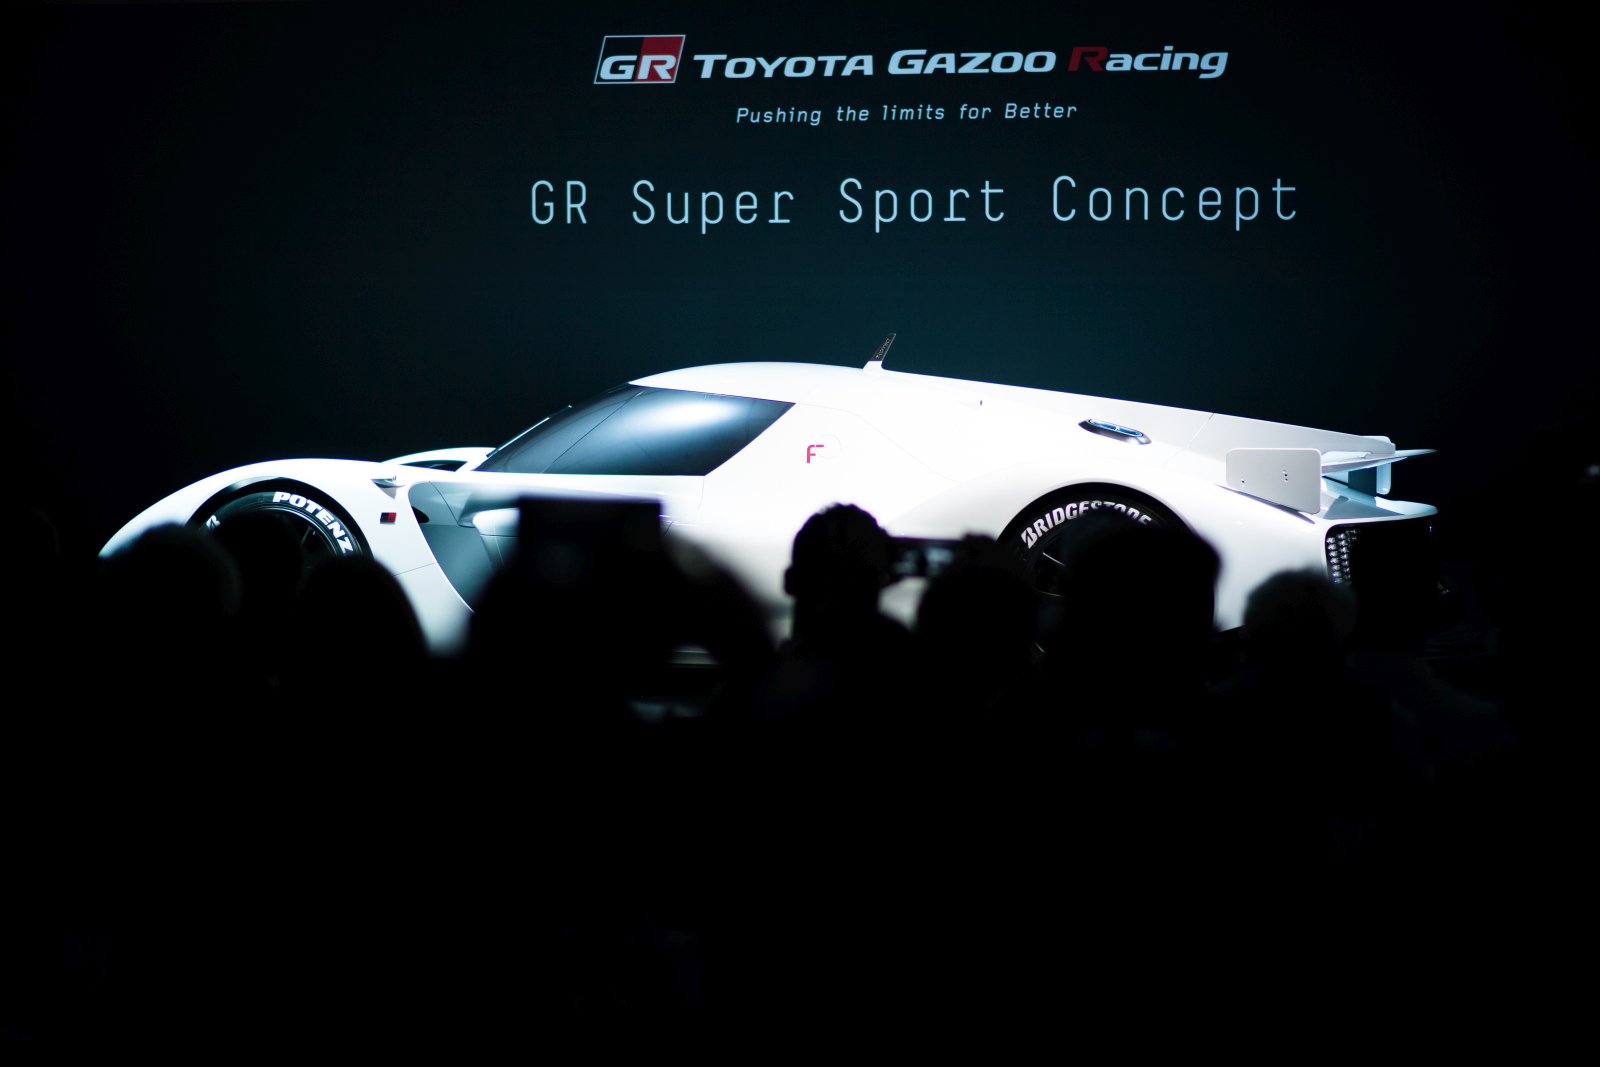 GR Super Sport Concept TOYOTA GAZOO Racing. Le Mans 24 Hours Race, 11th to 17th June 2018 Circuit de la Sarthe, Le Mans, France.